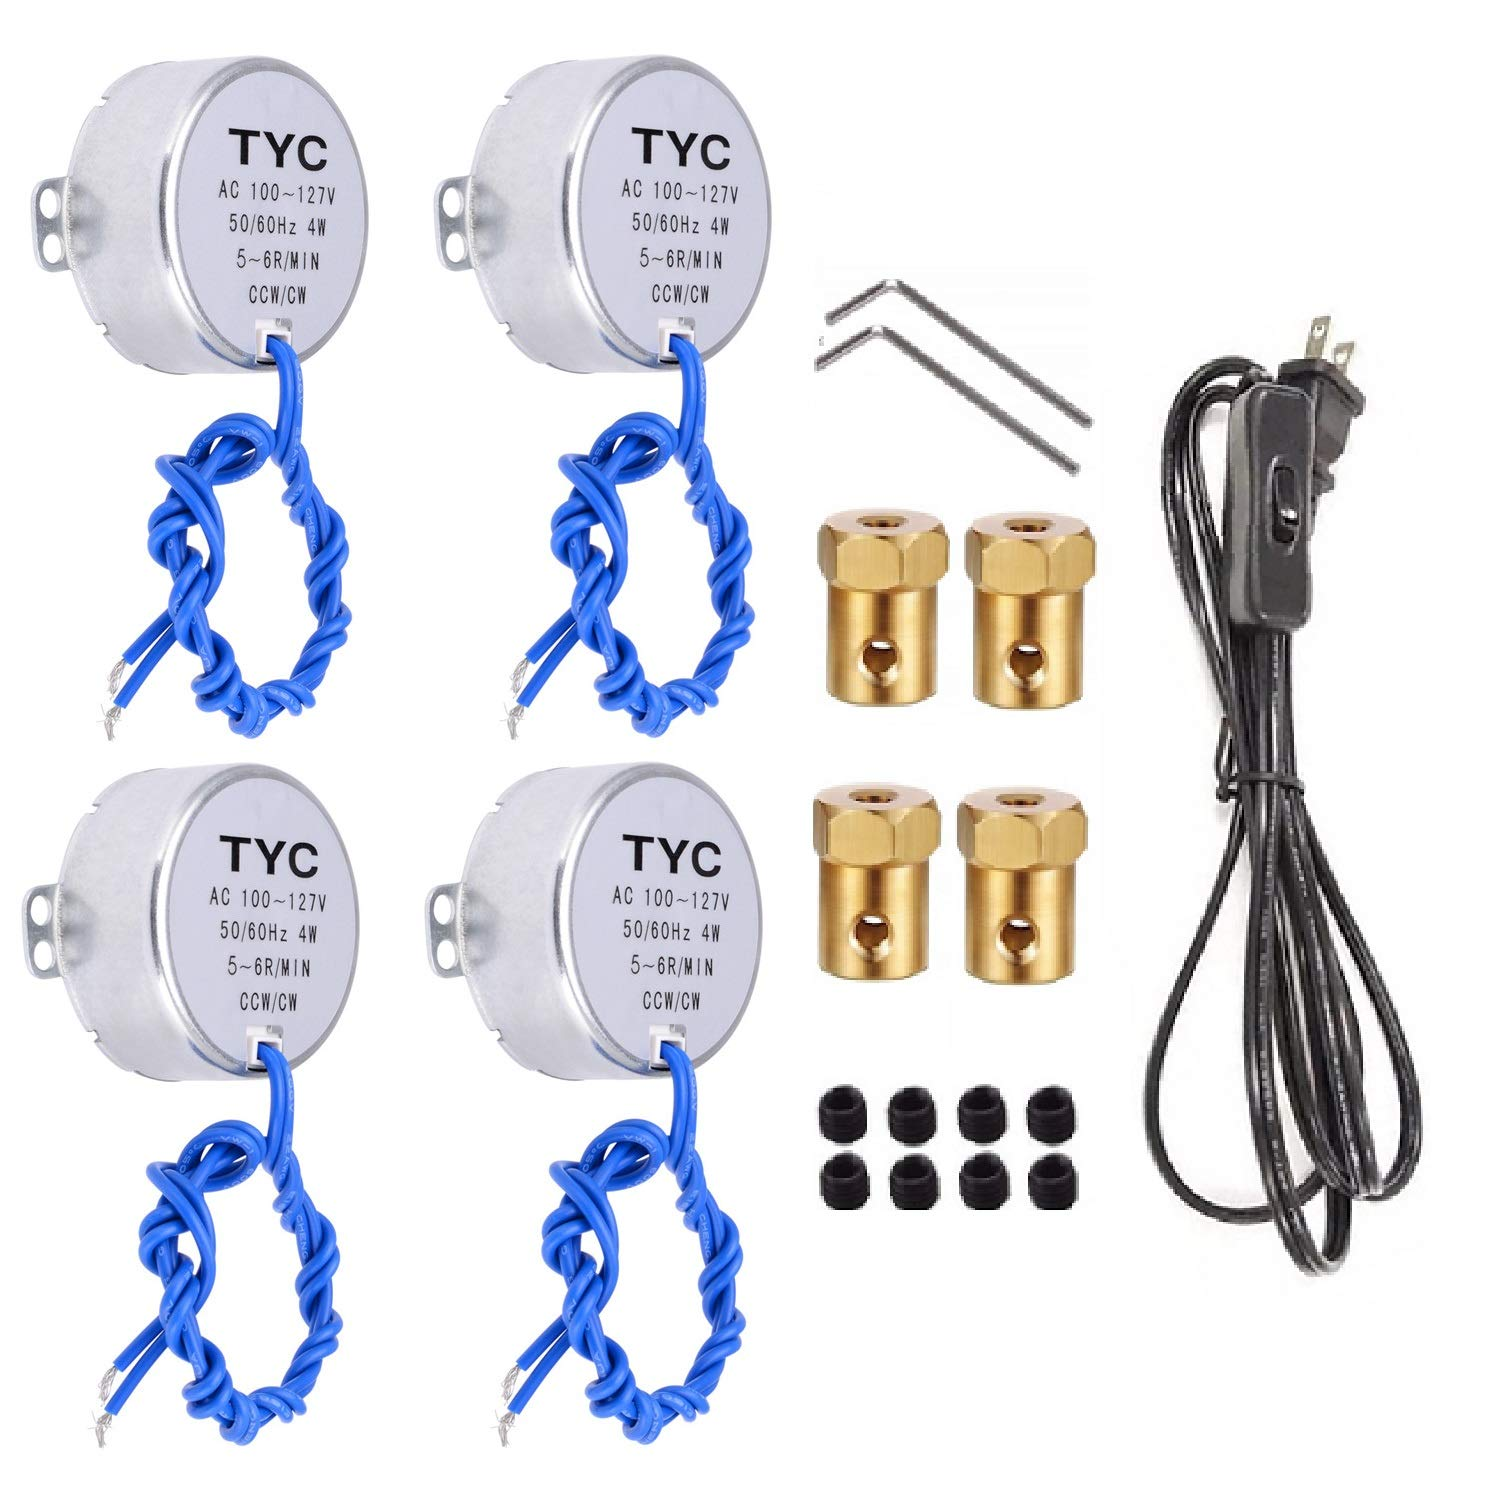 4PCS Synchronous Synchron Motor Electric Turntable Motor with 7mm Flexible Coupling Connector/6ft Power Cord Switch Plug,50/60Hz AC100~127V 4W CCW/CW for Crafting,Cup Turner,Cuptisserie(5-6R)